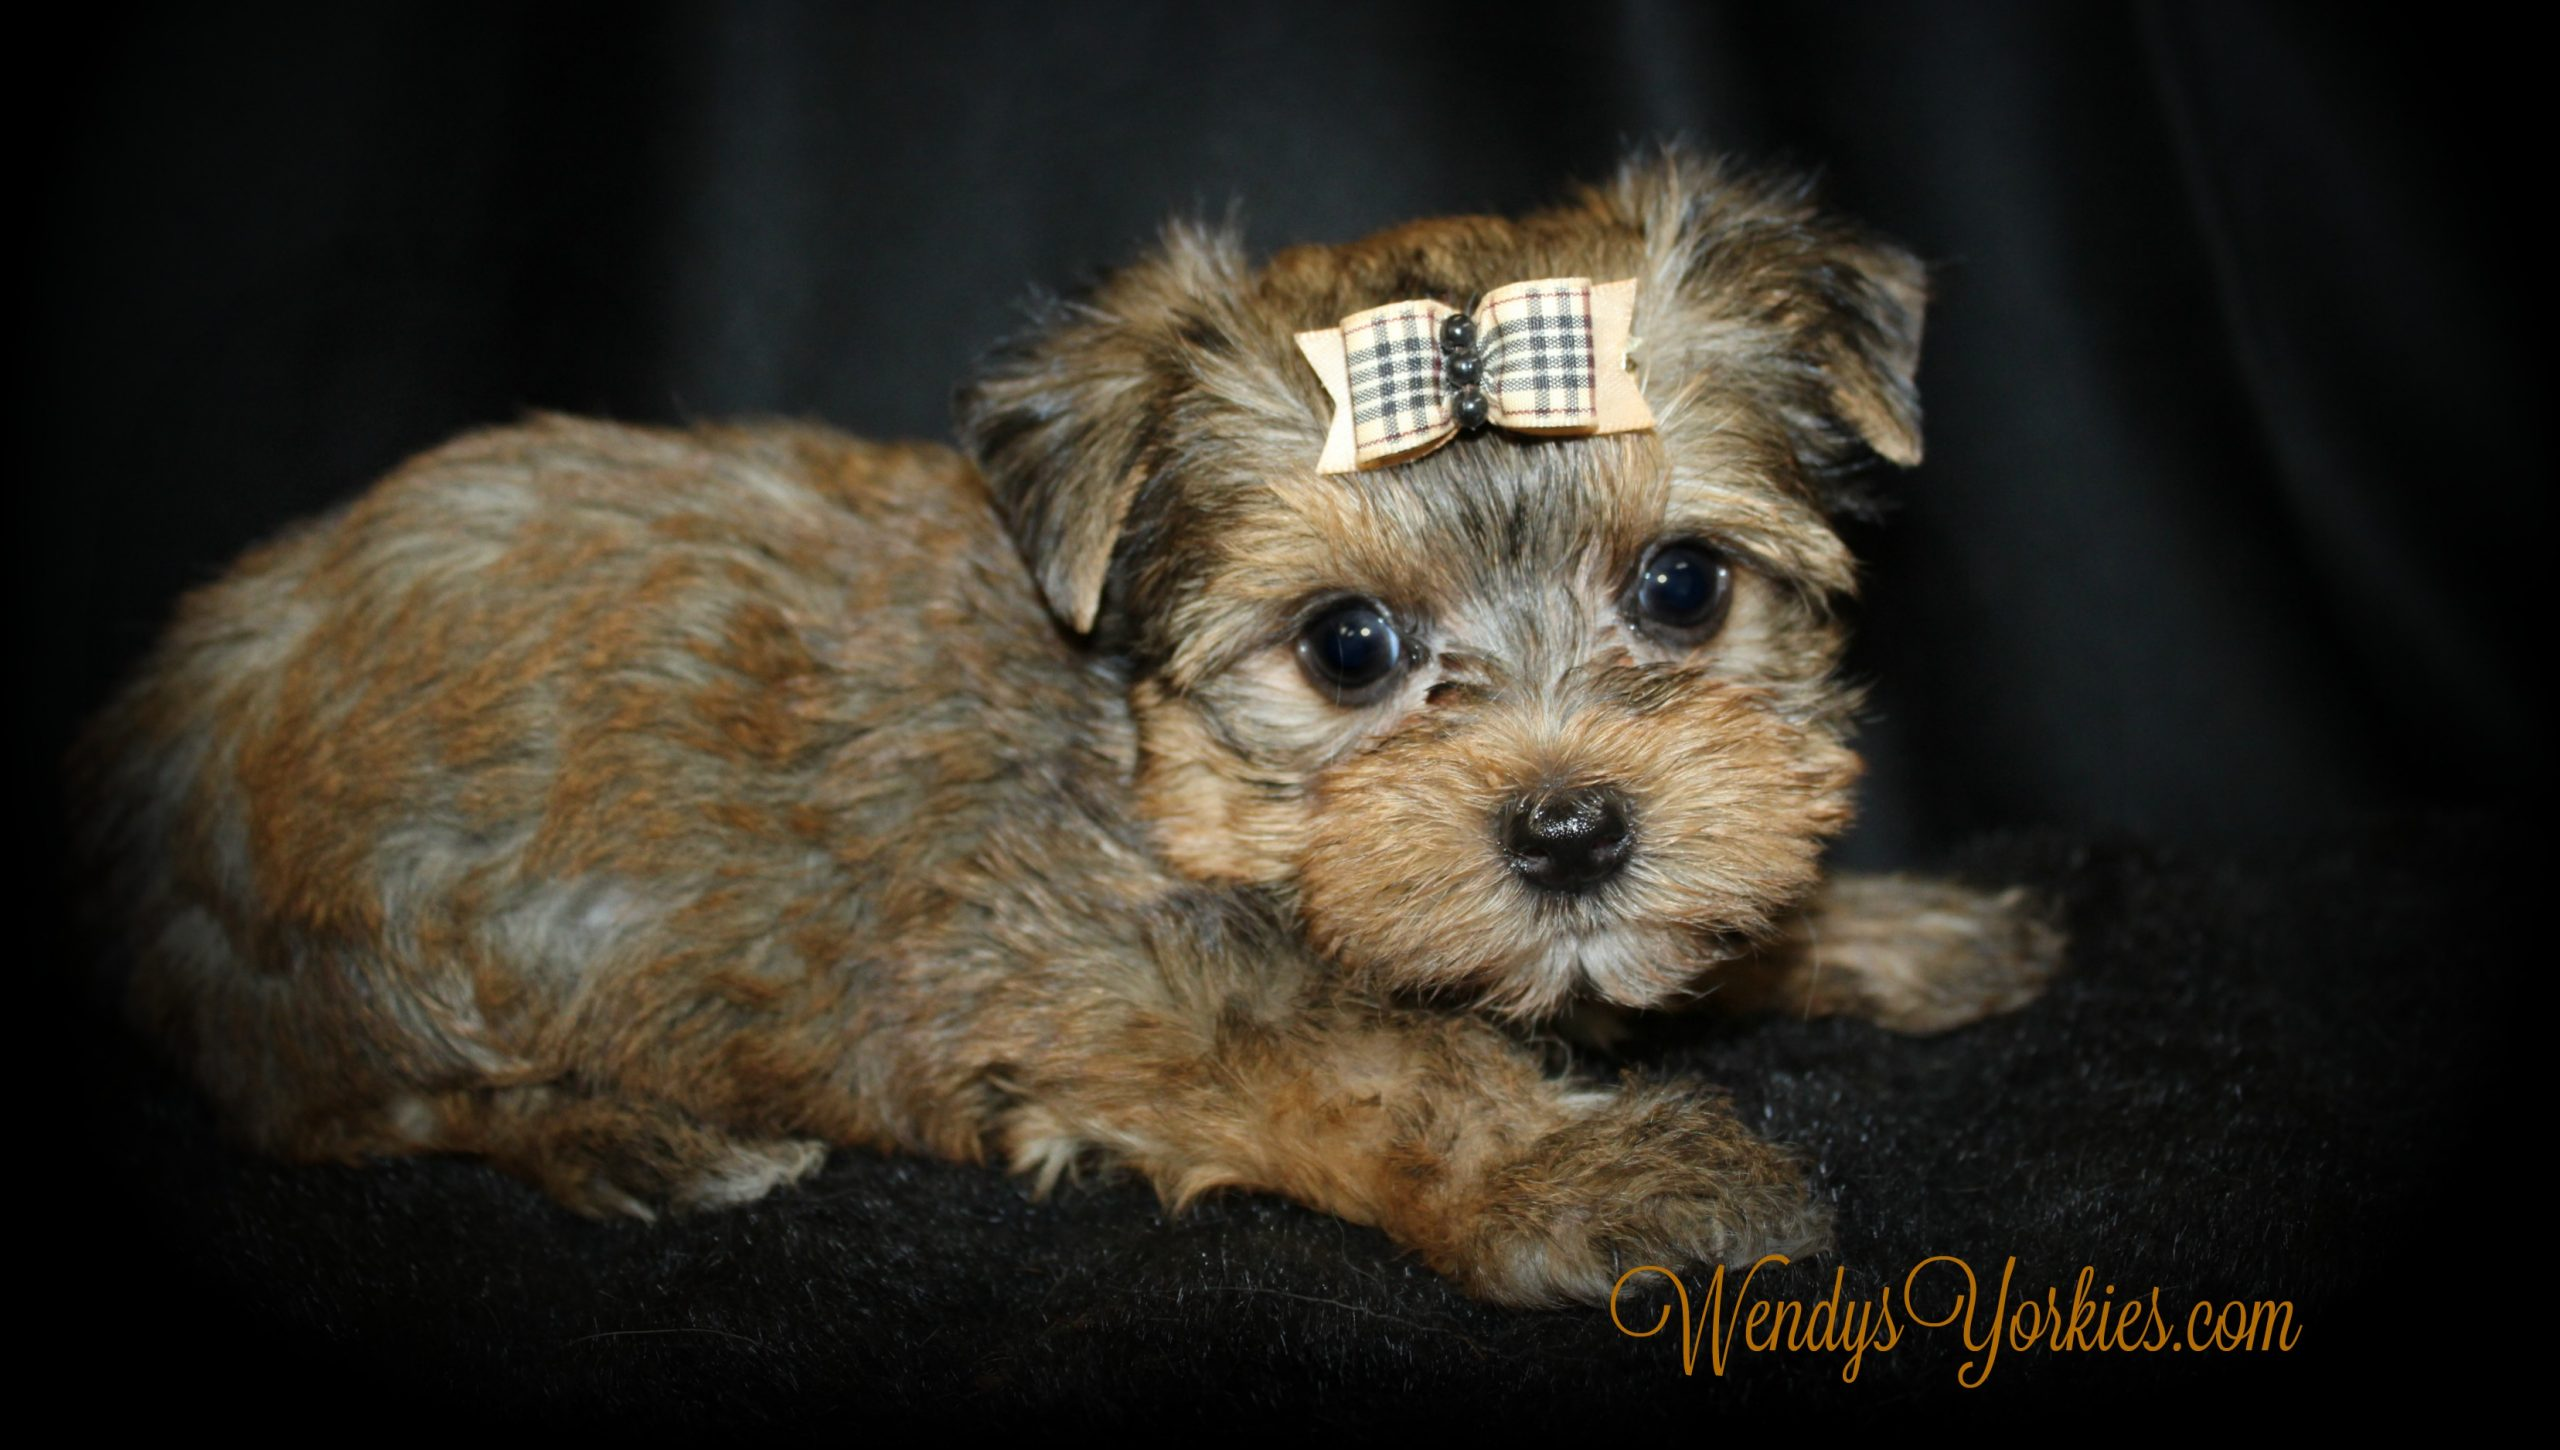 Sable Blonde Yorkie puppy for sale in Texas, Creed,WendysYorkies.com